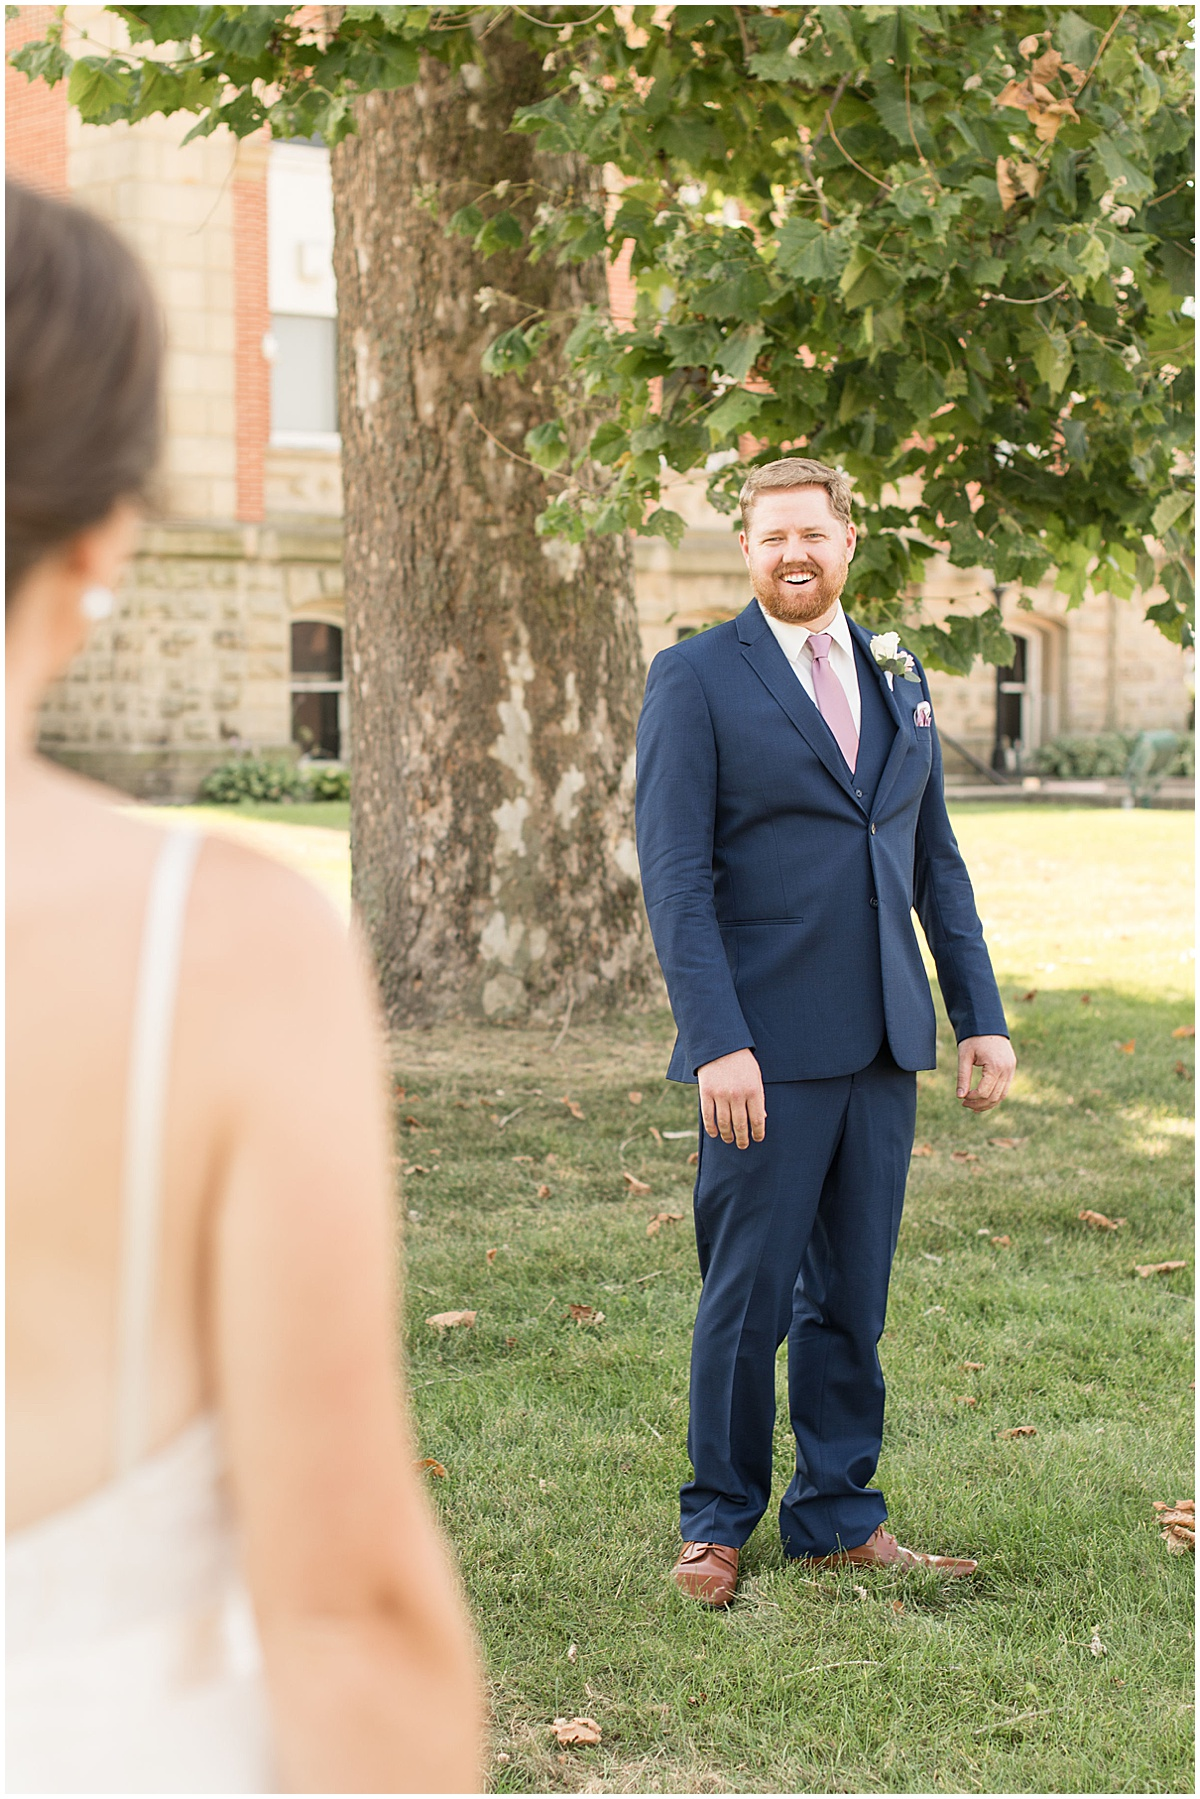 First look before Spohn Ballroom wedding in Goshen, Indiana by Victoria Rayburn Photography